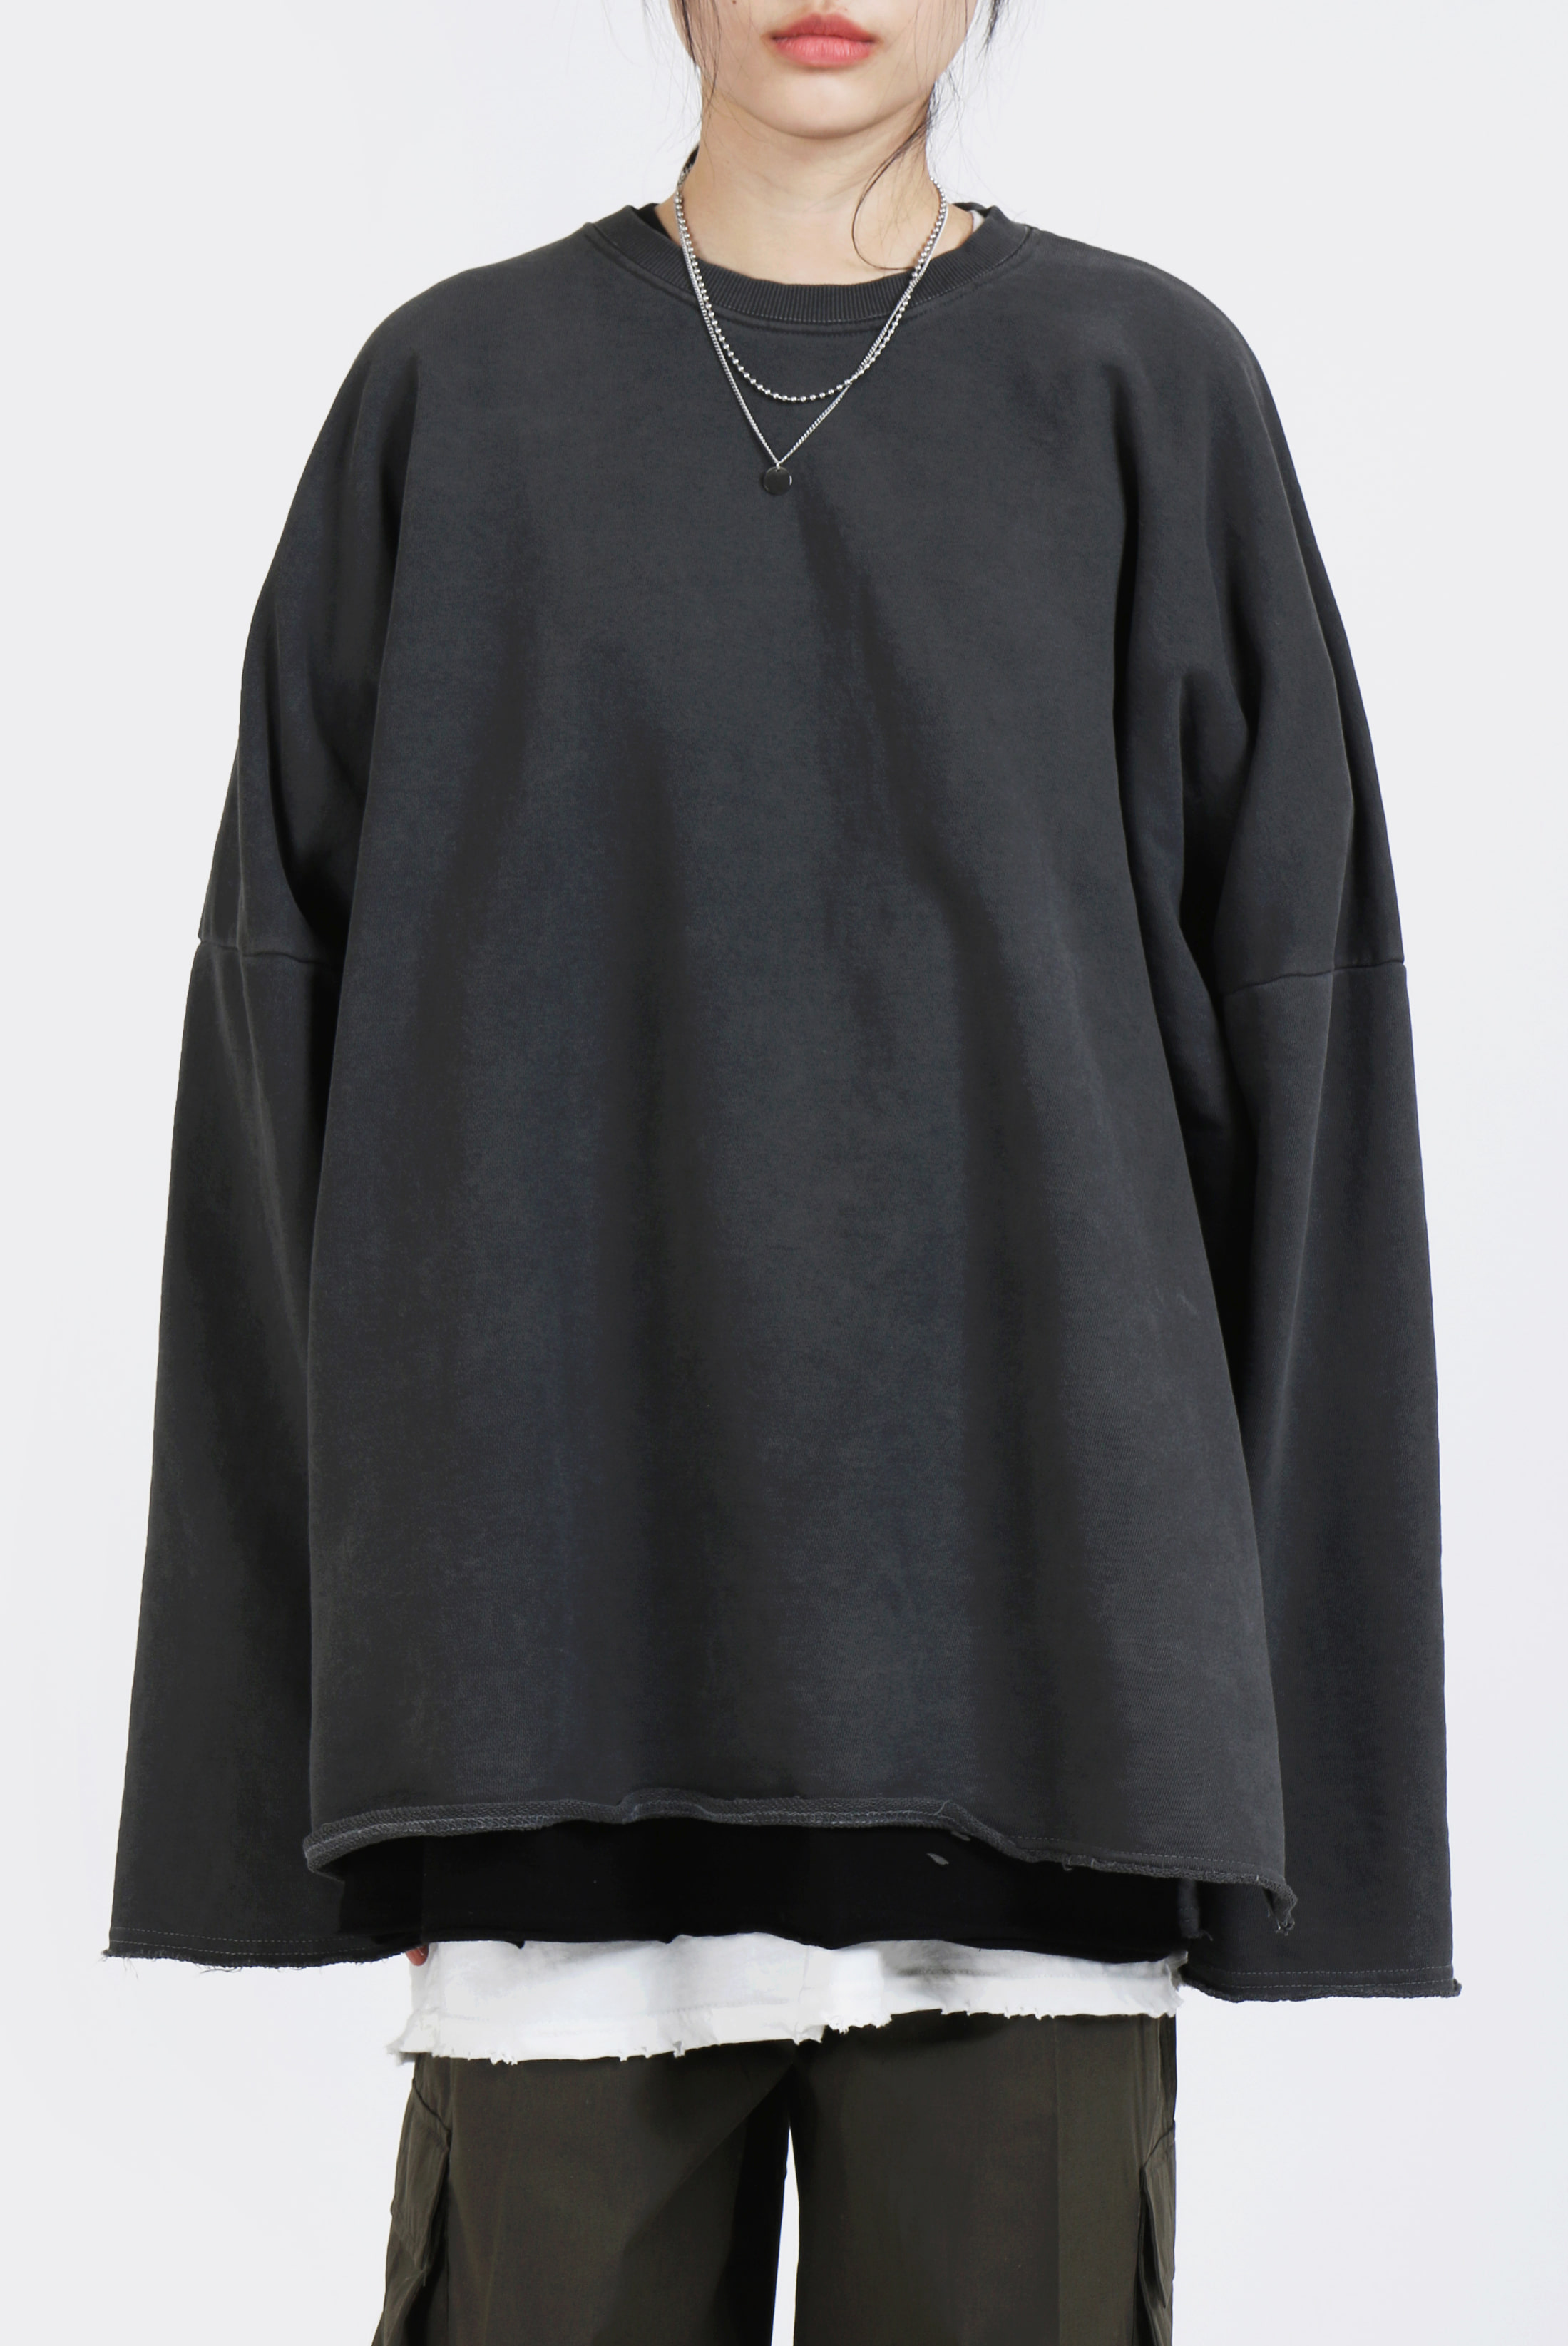 Dying_Cotton Long Sweatshirts